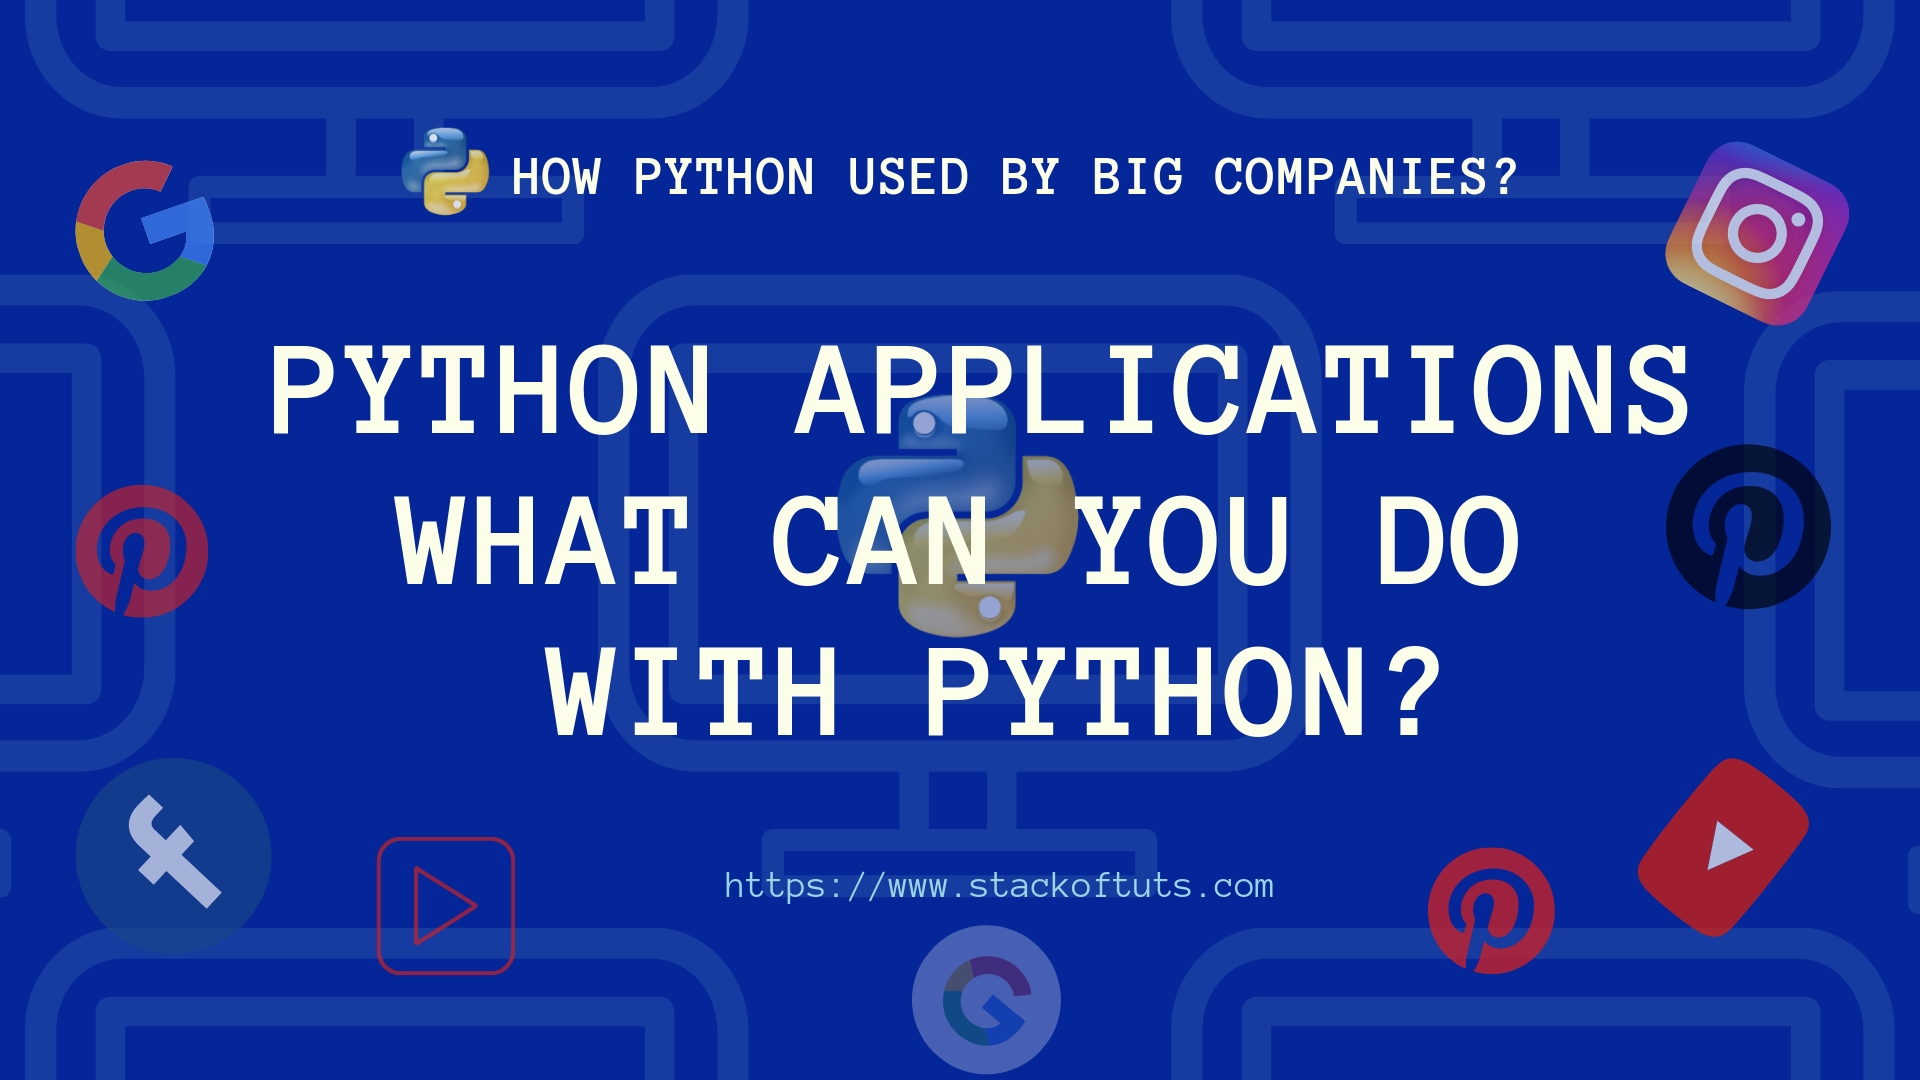 What can you do with Python or Python Applications?